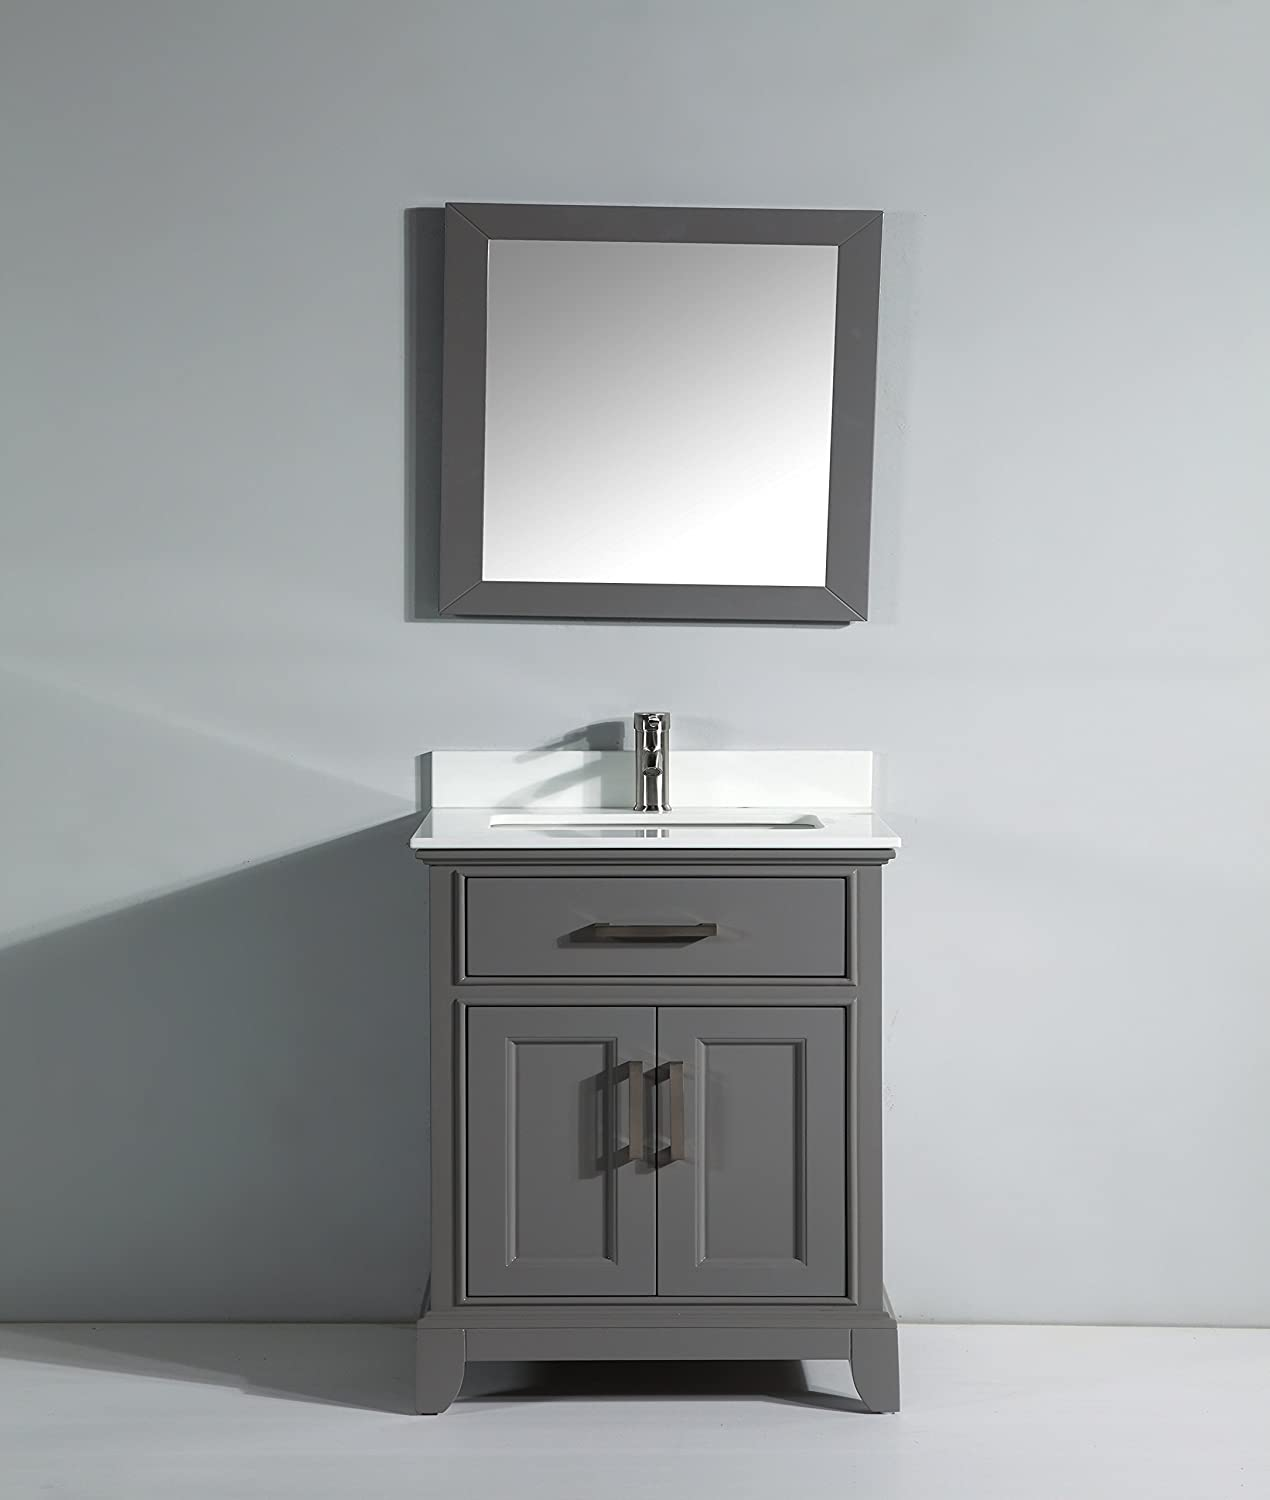 Exceptionnel Amazon.com: Vanity Art 30u201d Single Sink Bathroom Vanity Set Super White  Phoenix Stone Free Mirror VA1030 G: Home U0026 Kitchen